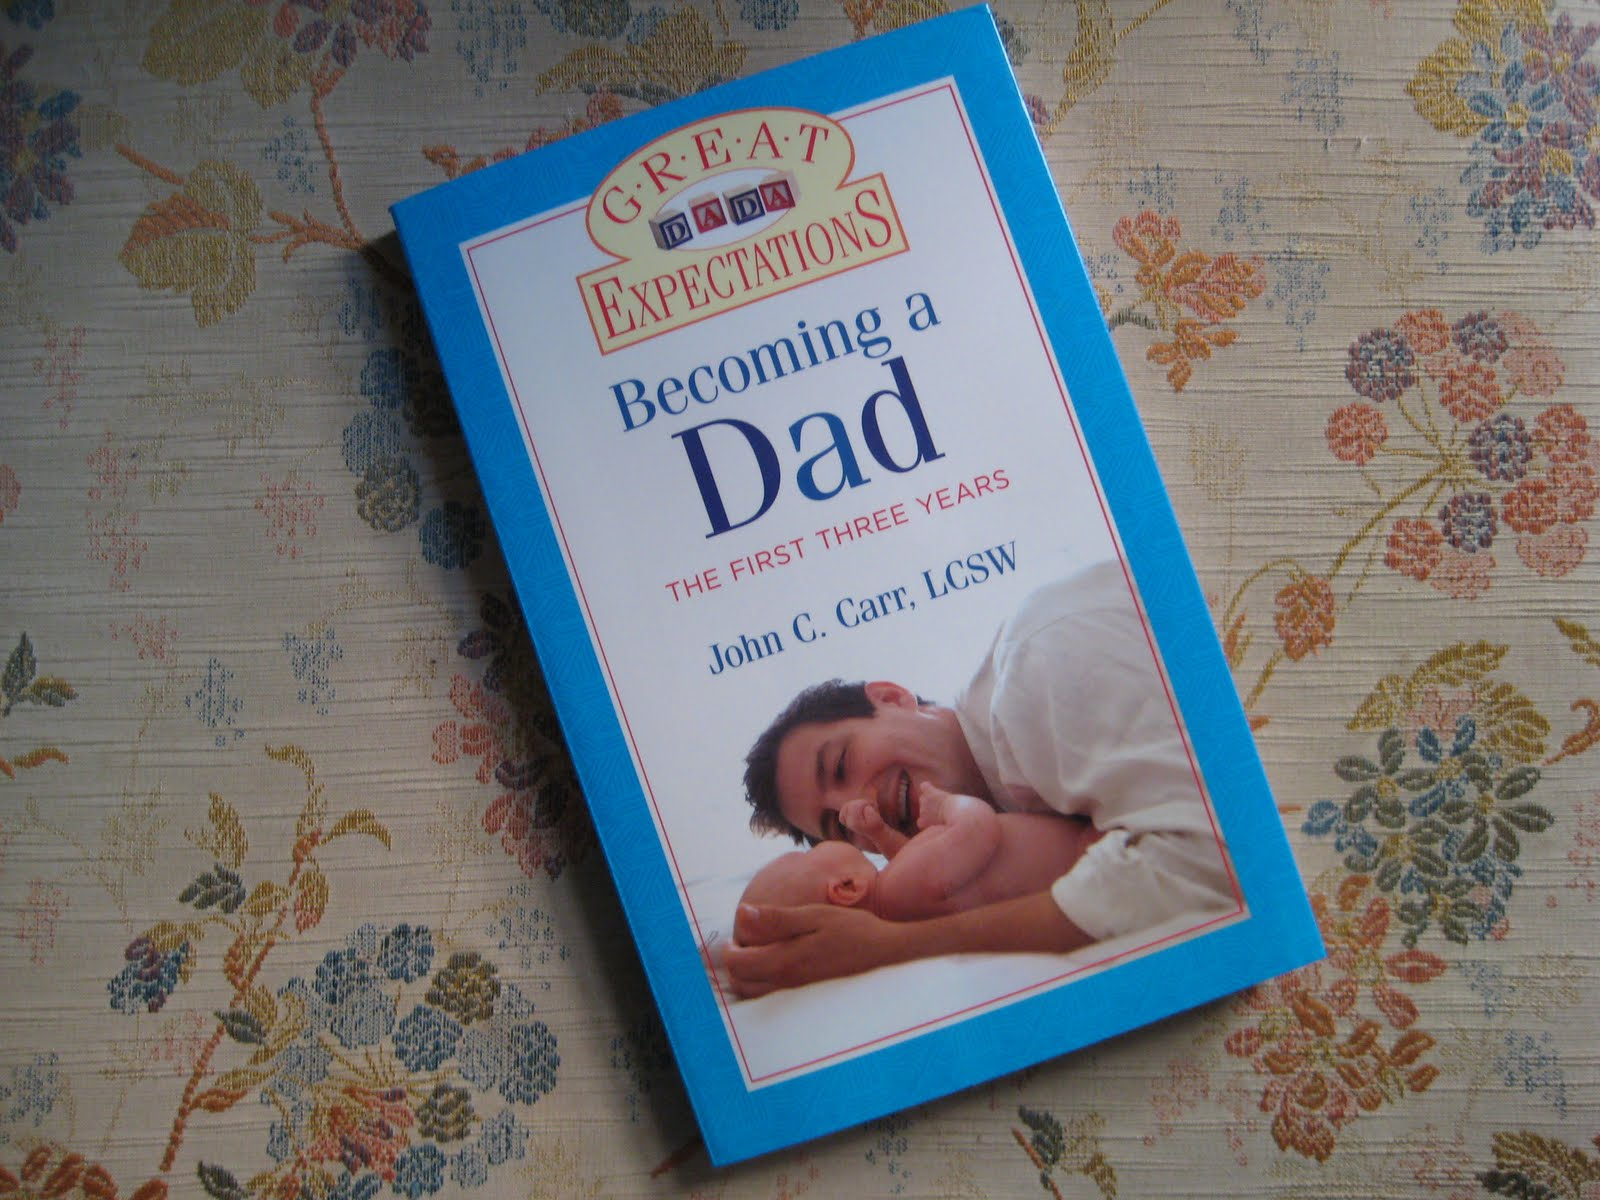 """John C. Carr - """"Great Expectations; Becoming a Dad"""""""